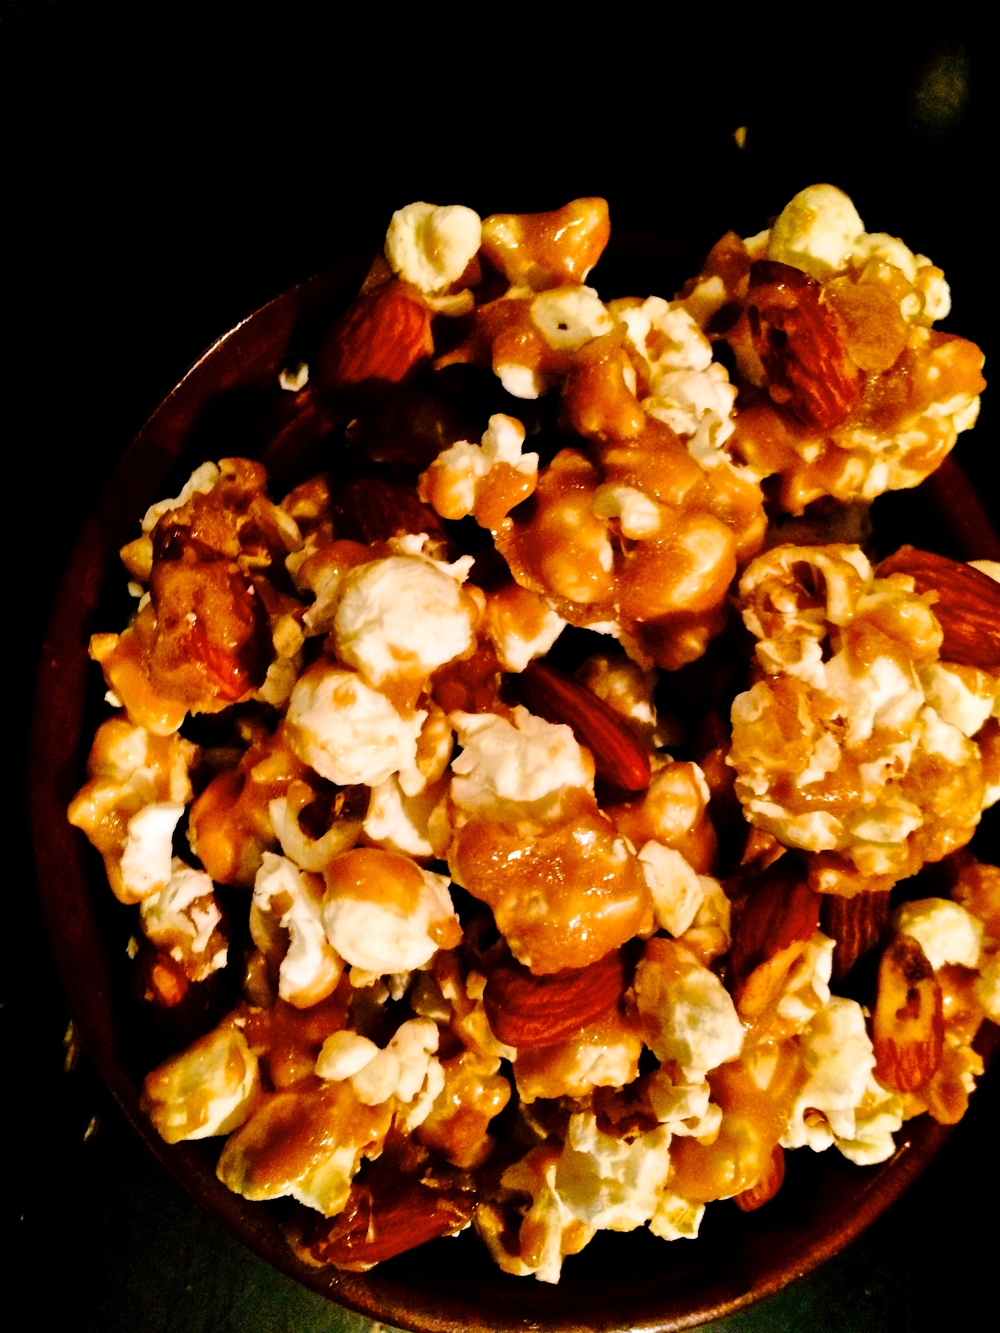 TST_Popcorn_Caramel/Almonds_photo.jpeg